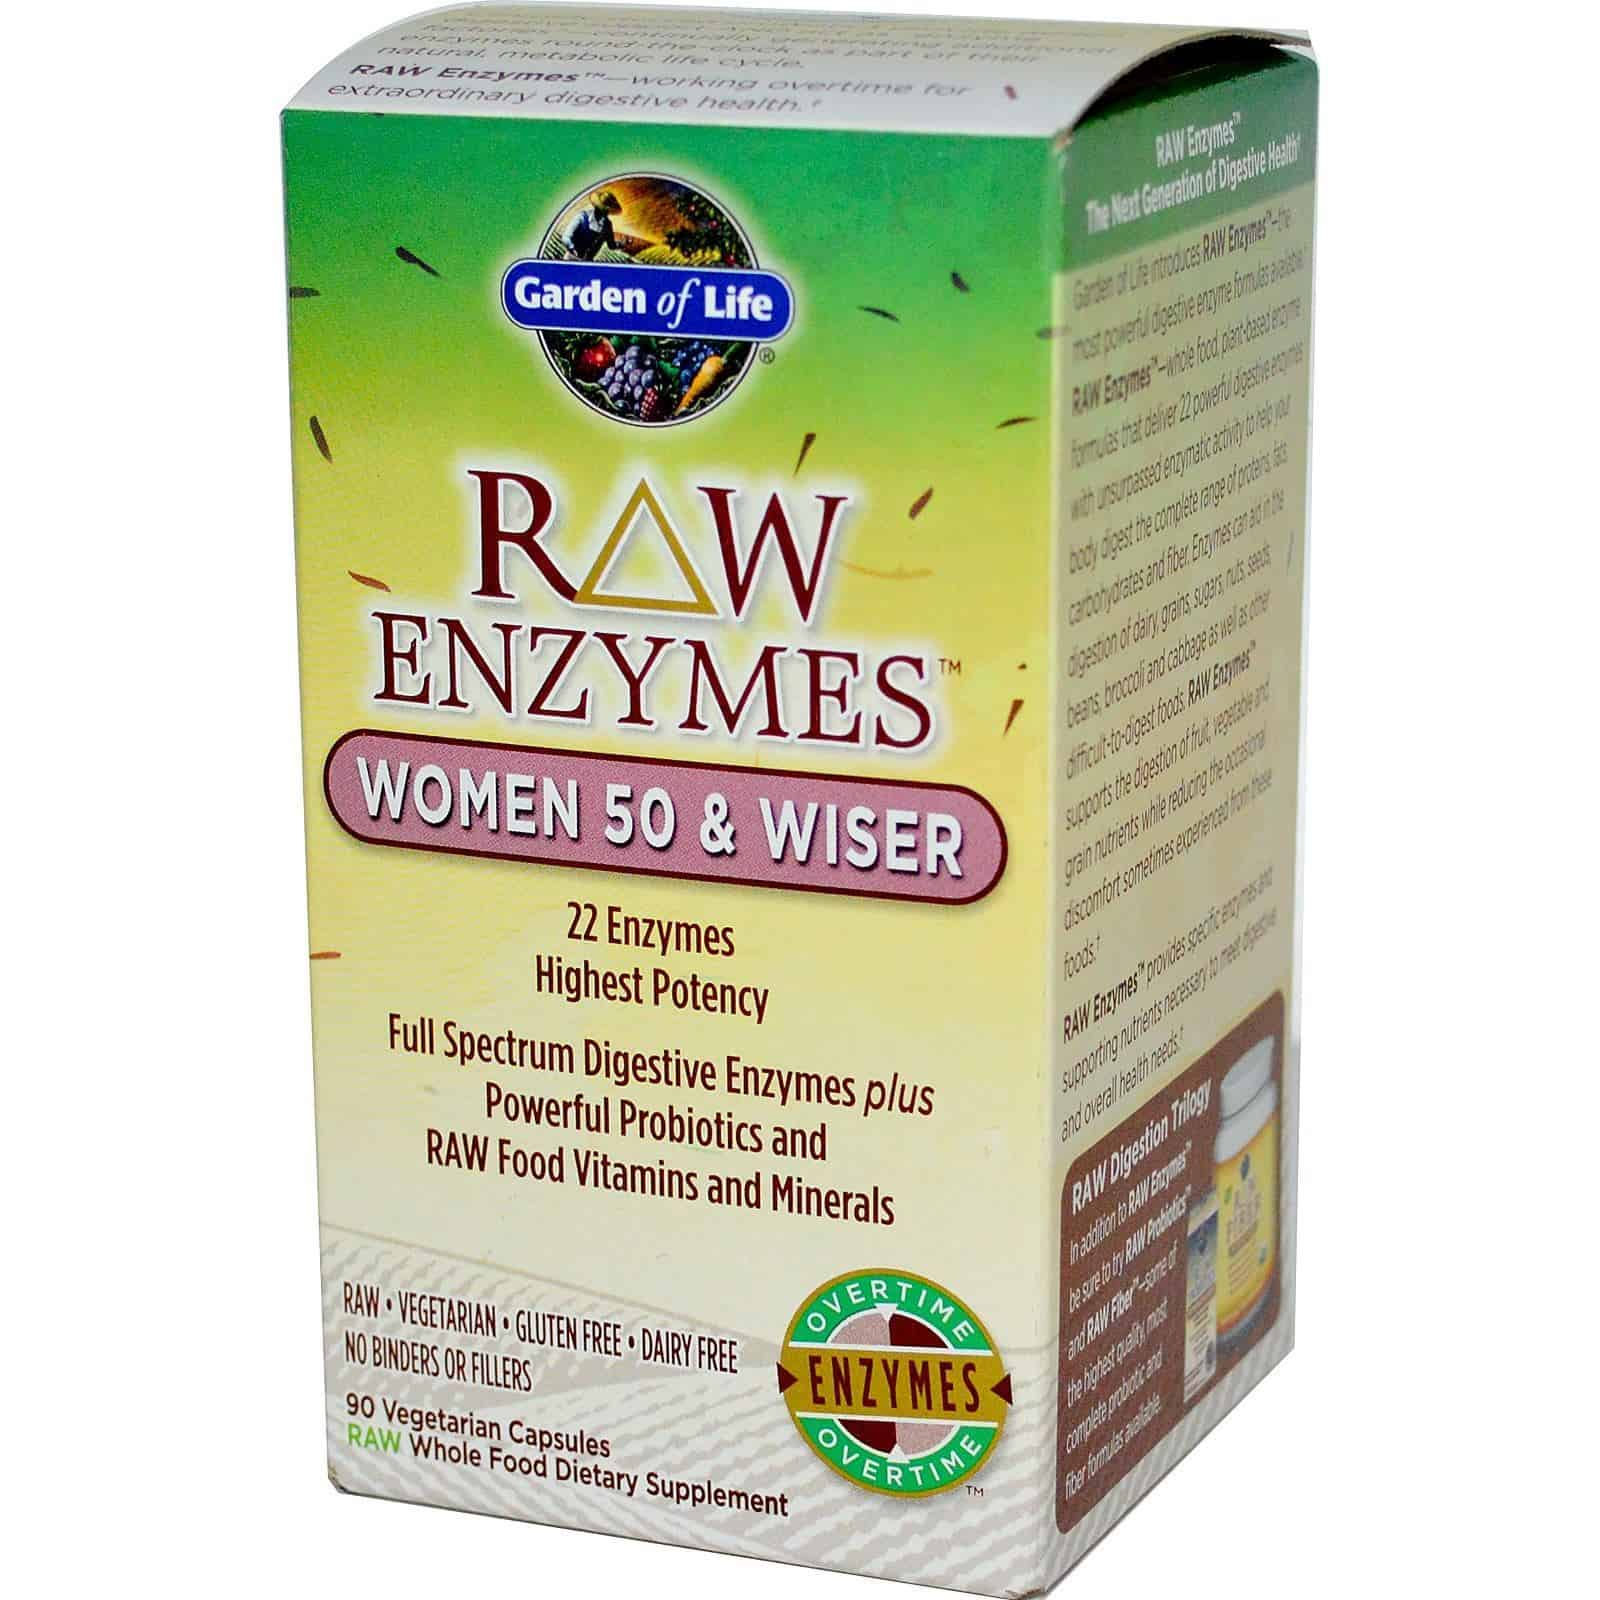 Digestive Issues? Garden of Life's RAW Enzymes Might Help